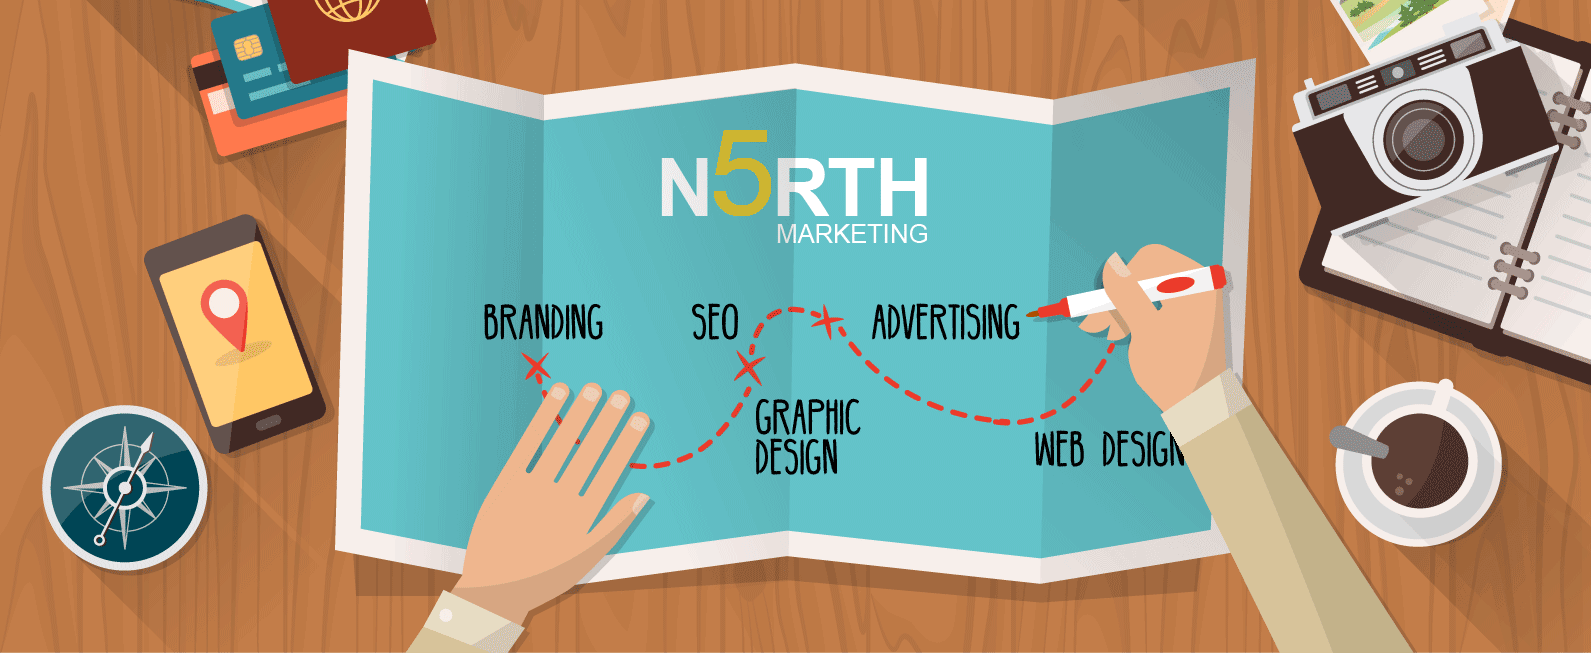 5 north marketing